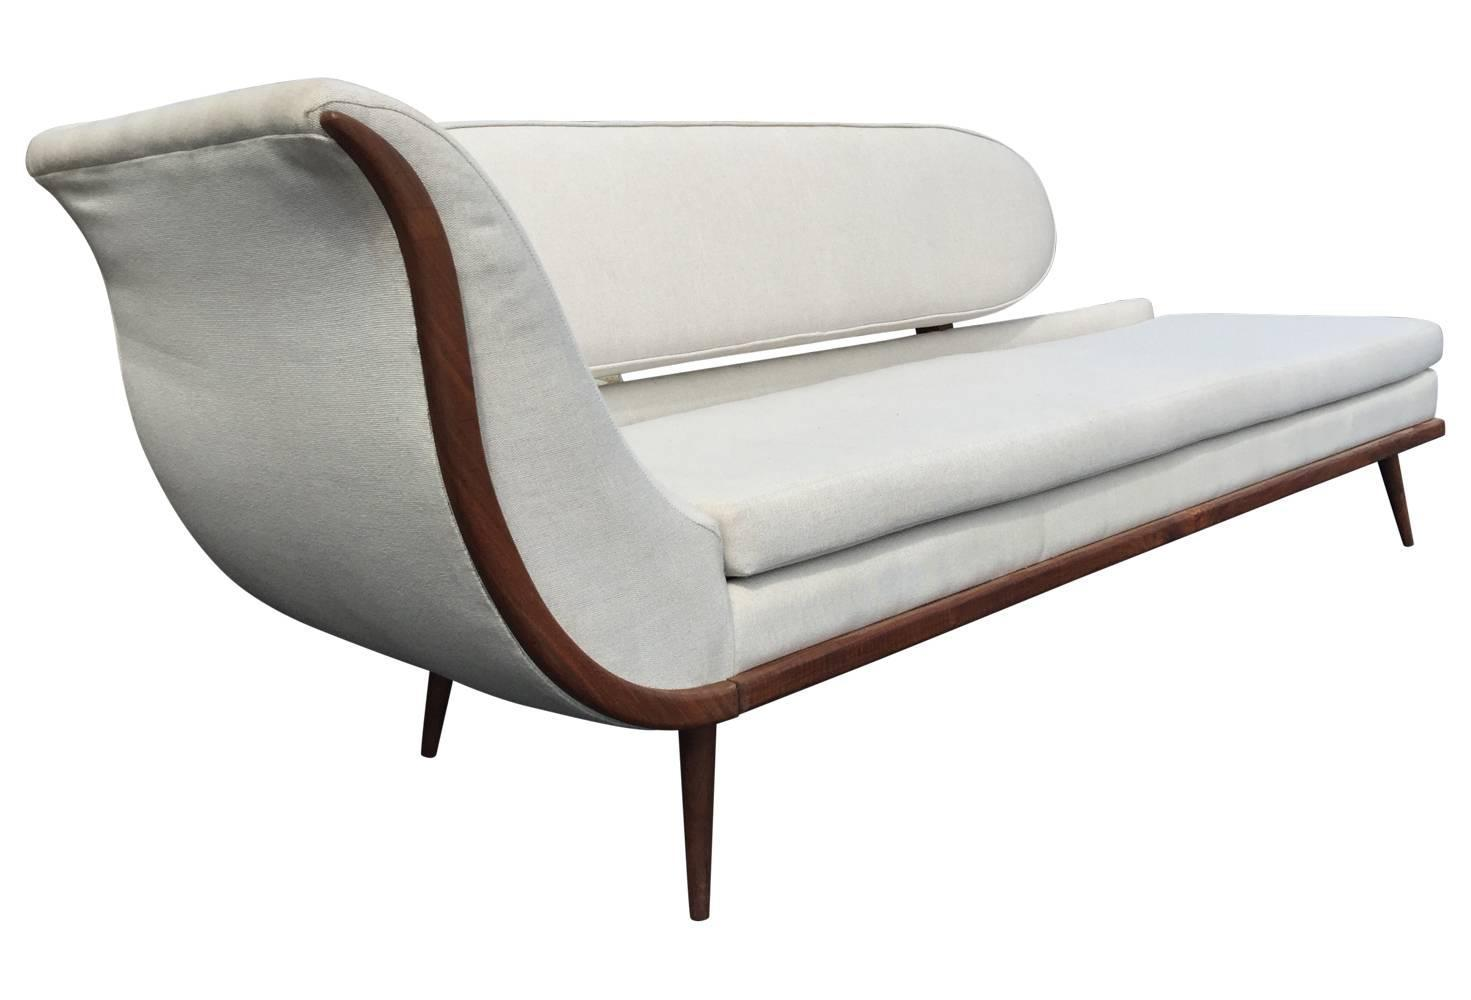 Furniture For Sale Montreal Exquisite Mid Century Modern Sofa Settee By Cimon Of